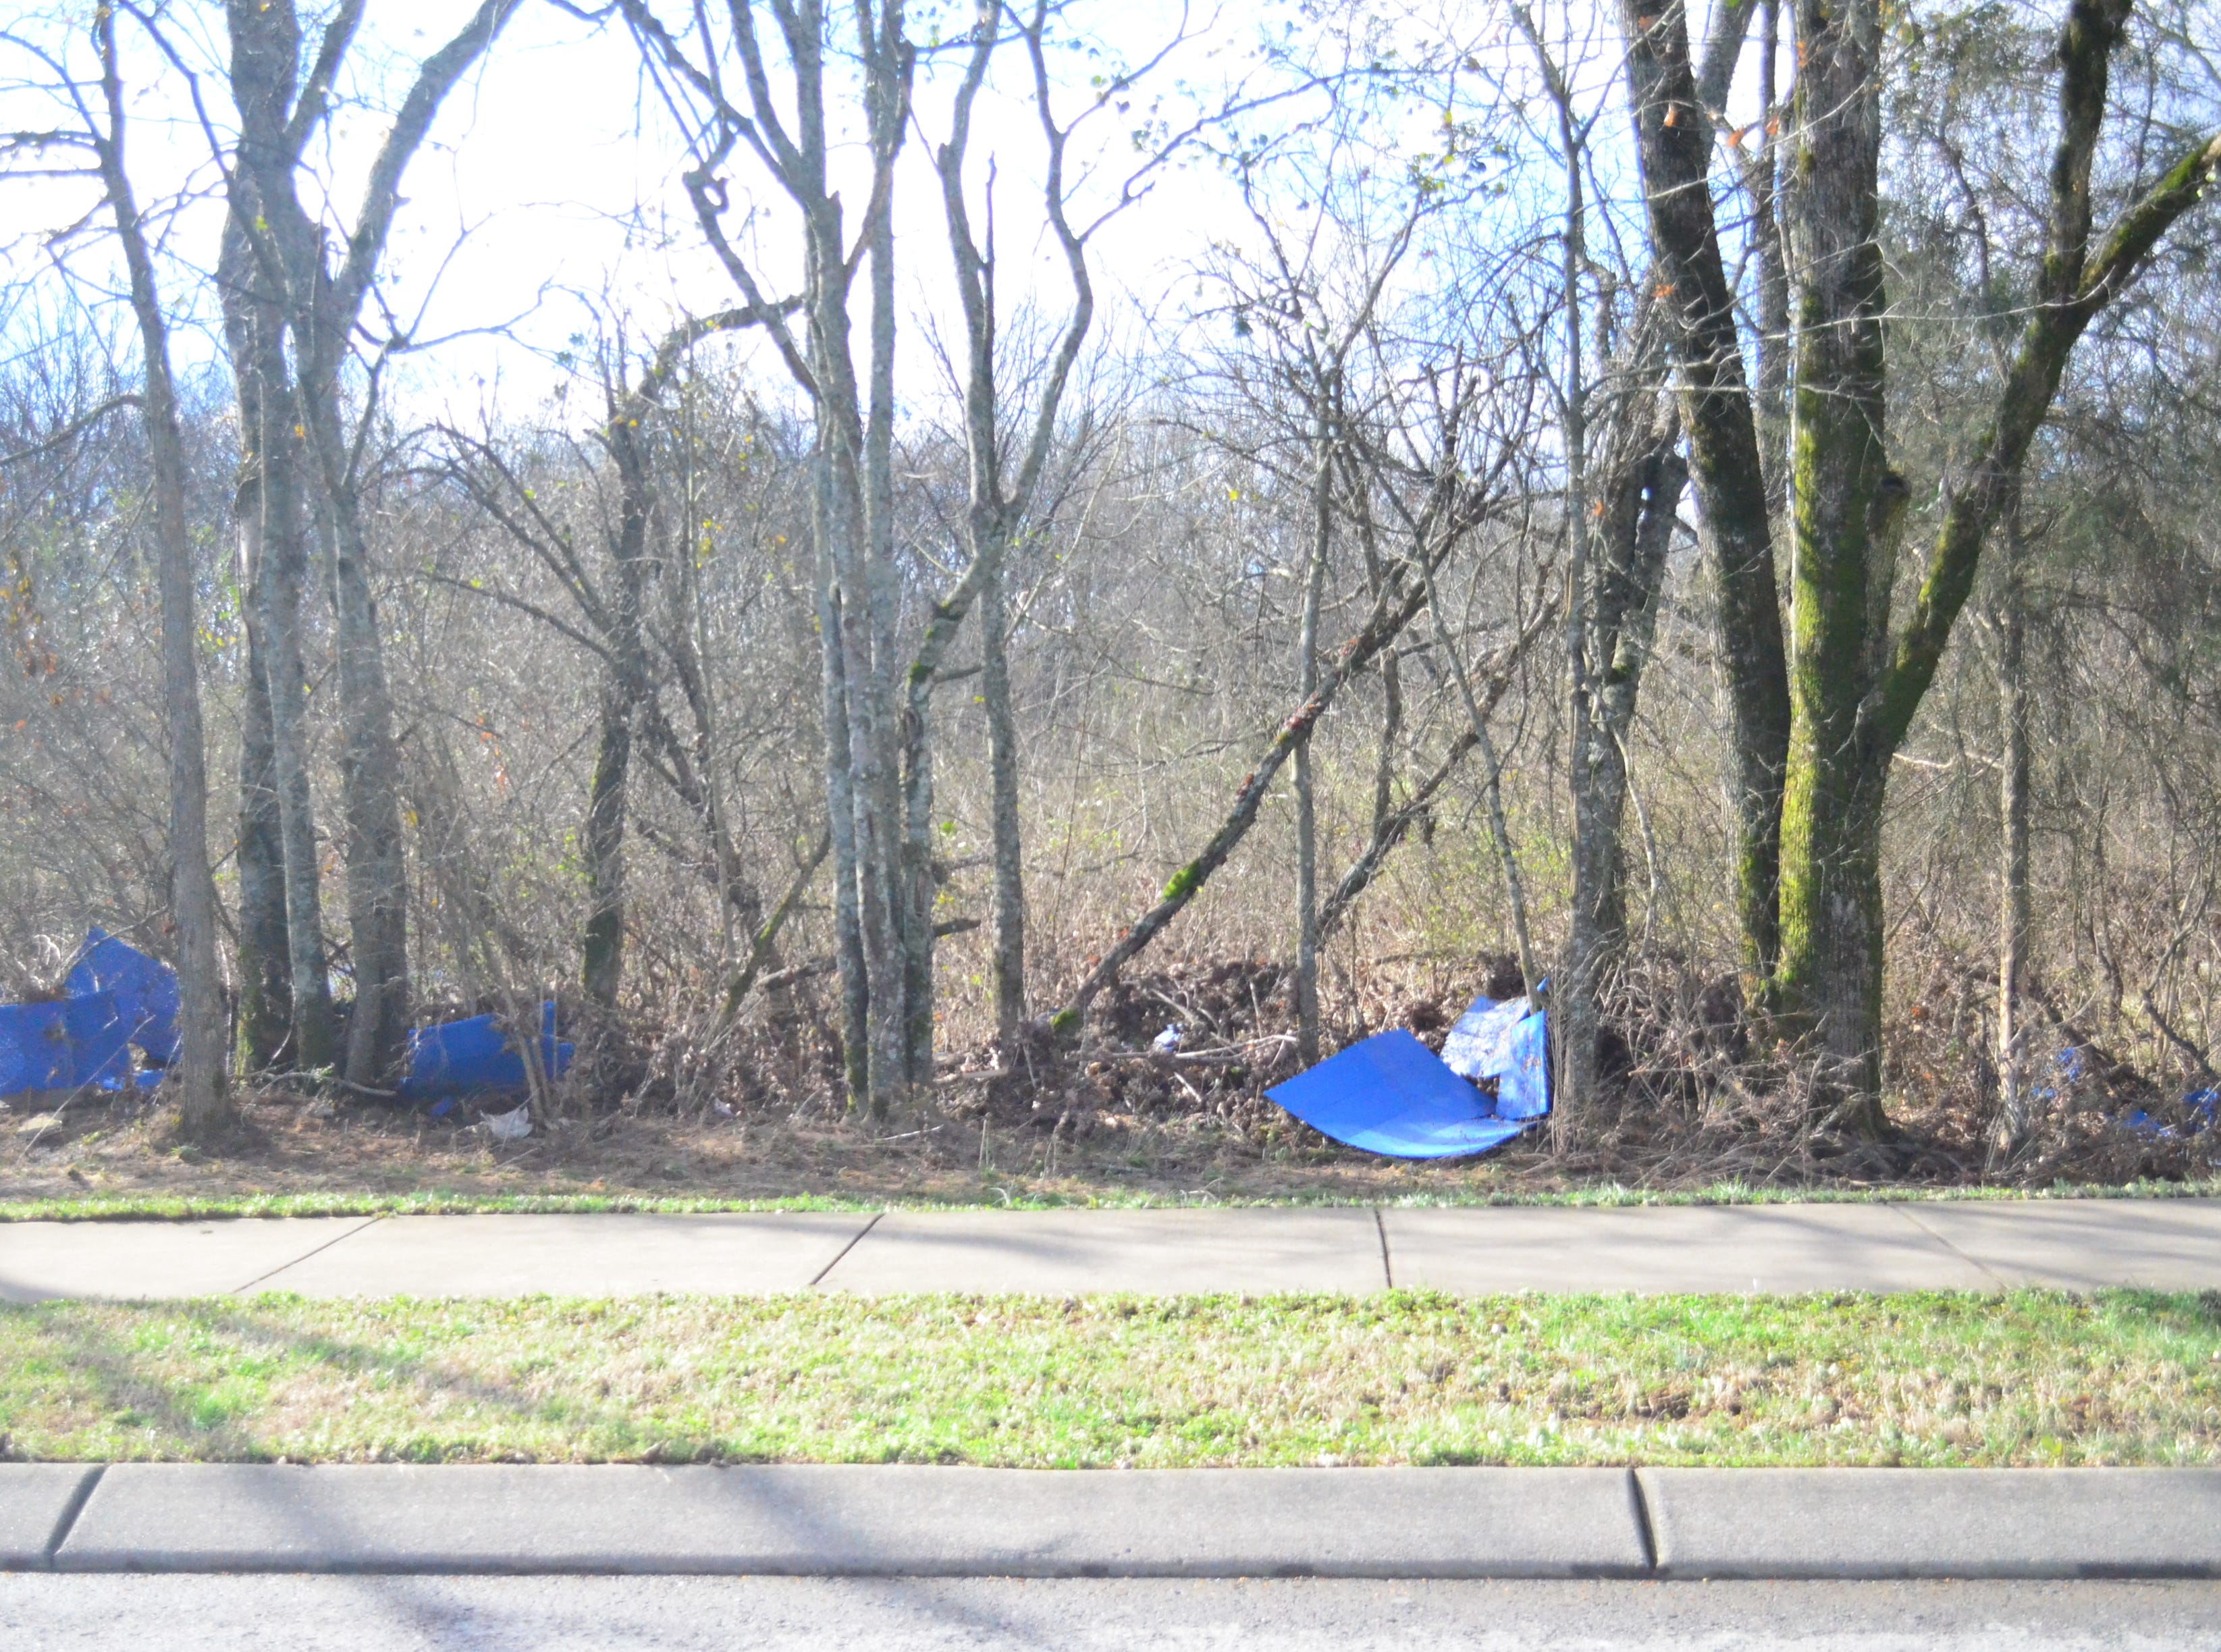 Pieces of the inline hockey rink at Veteran's Park in Hendersonville were scattered along Saundersville Road Sunday morning - quite a bit of distance from the park.